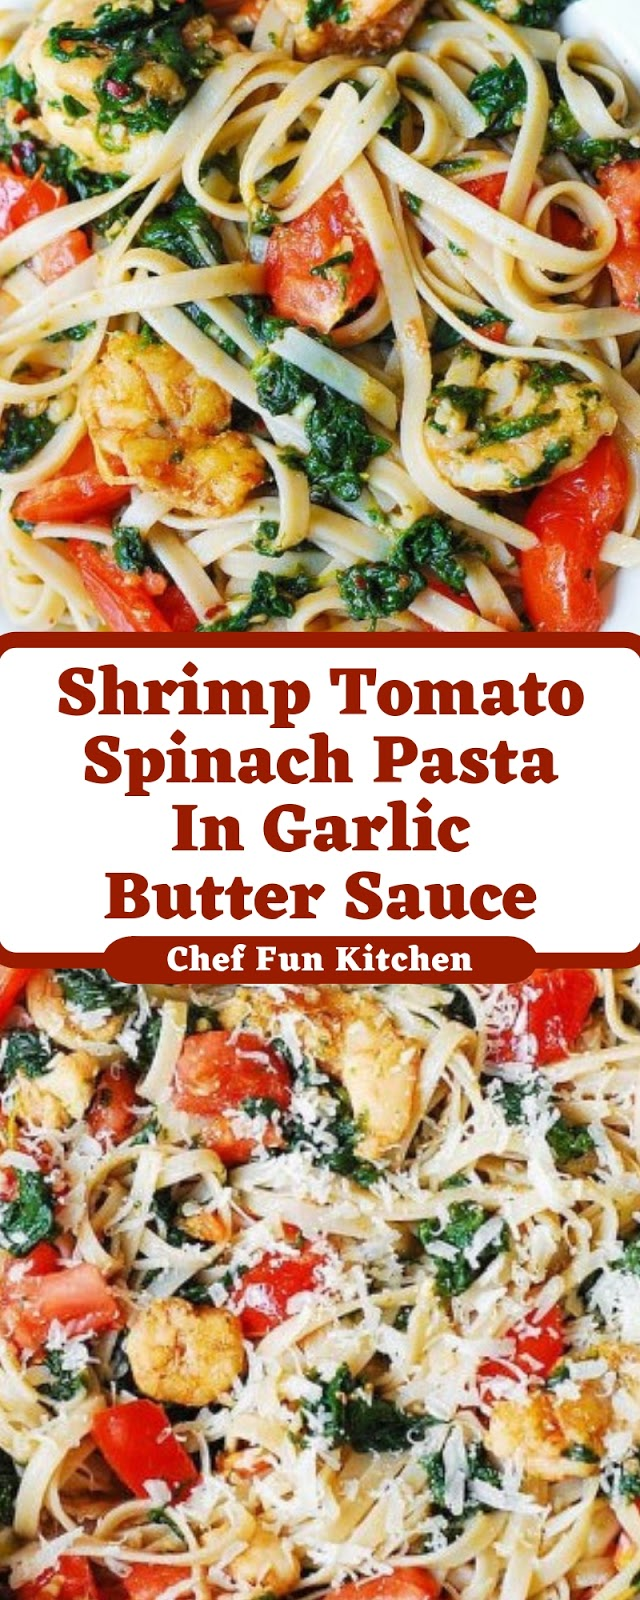 Shrimp Tomato Spinach Pasta In Garlic Butter Sauce